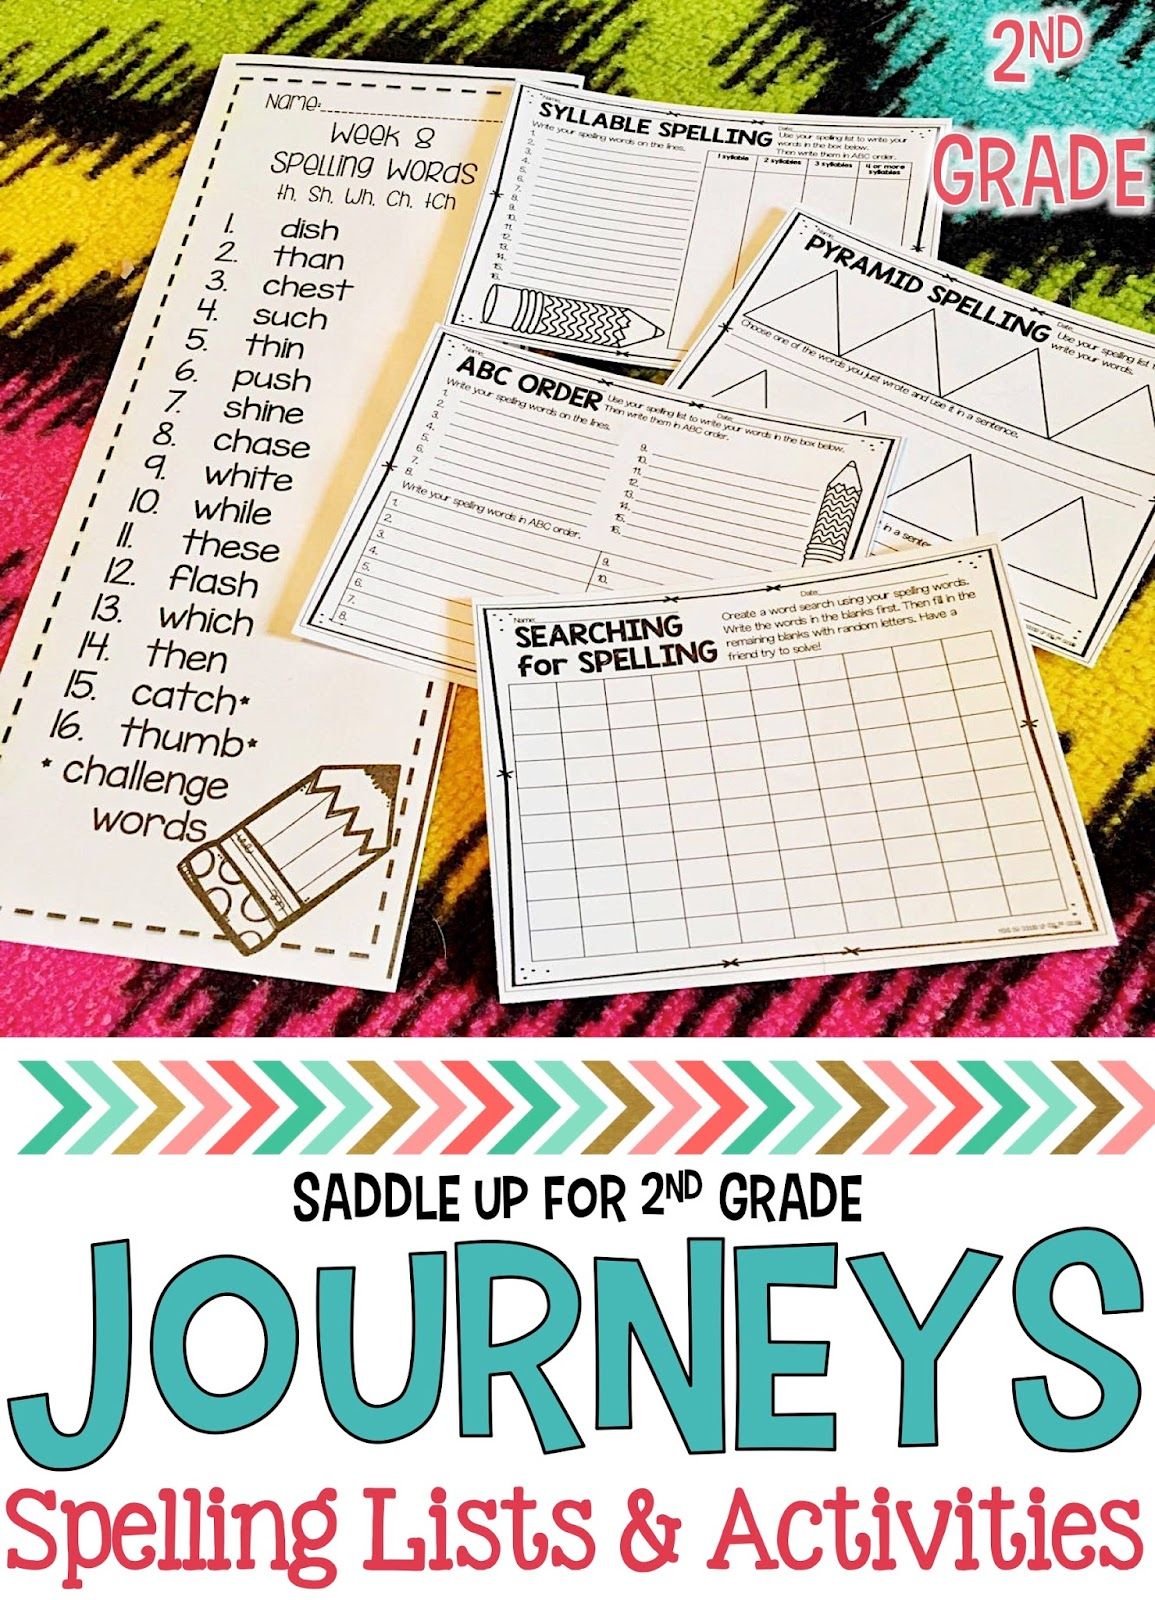 Journeys 2nd Grade Spelling Lists and Activities - Saddle Up